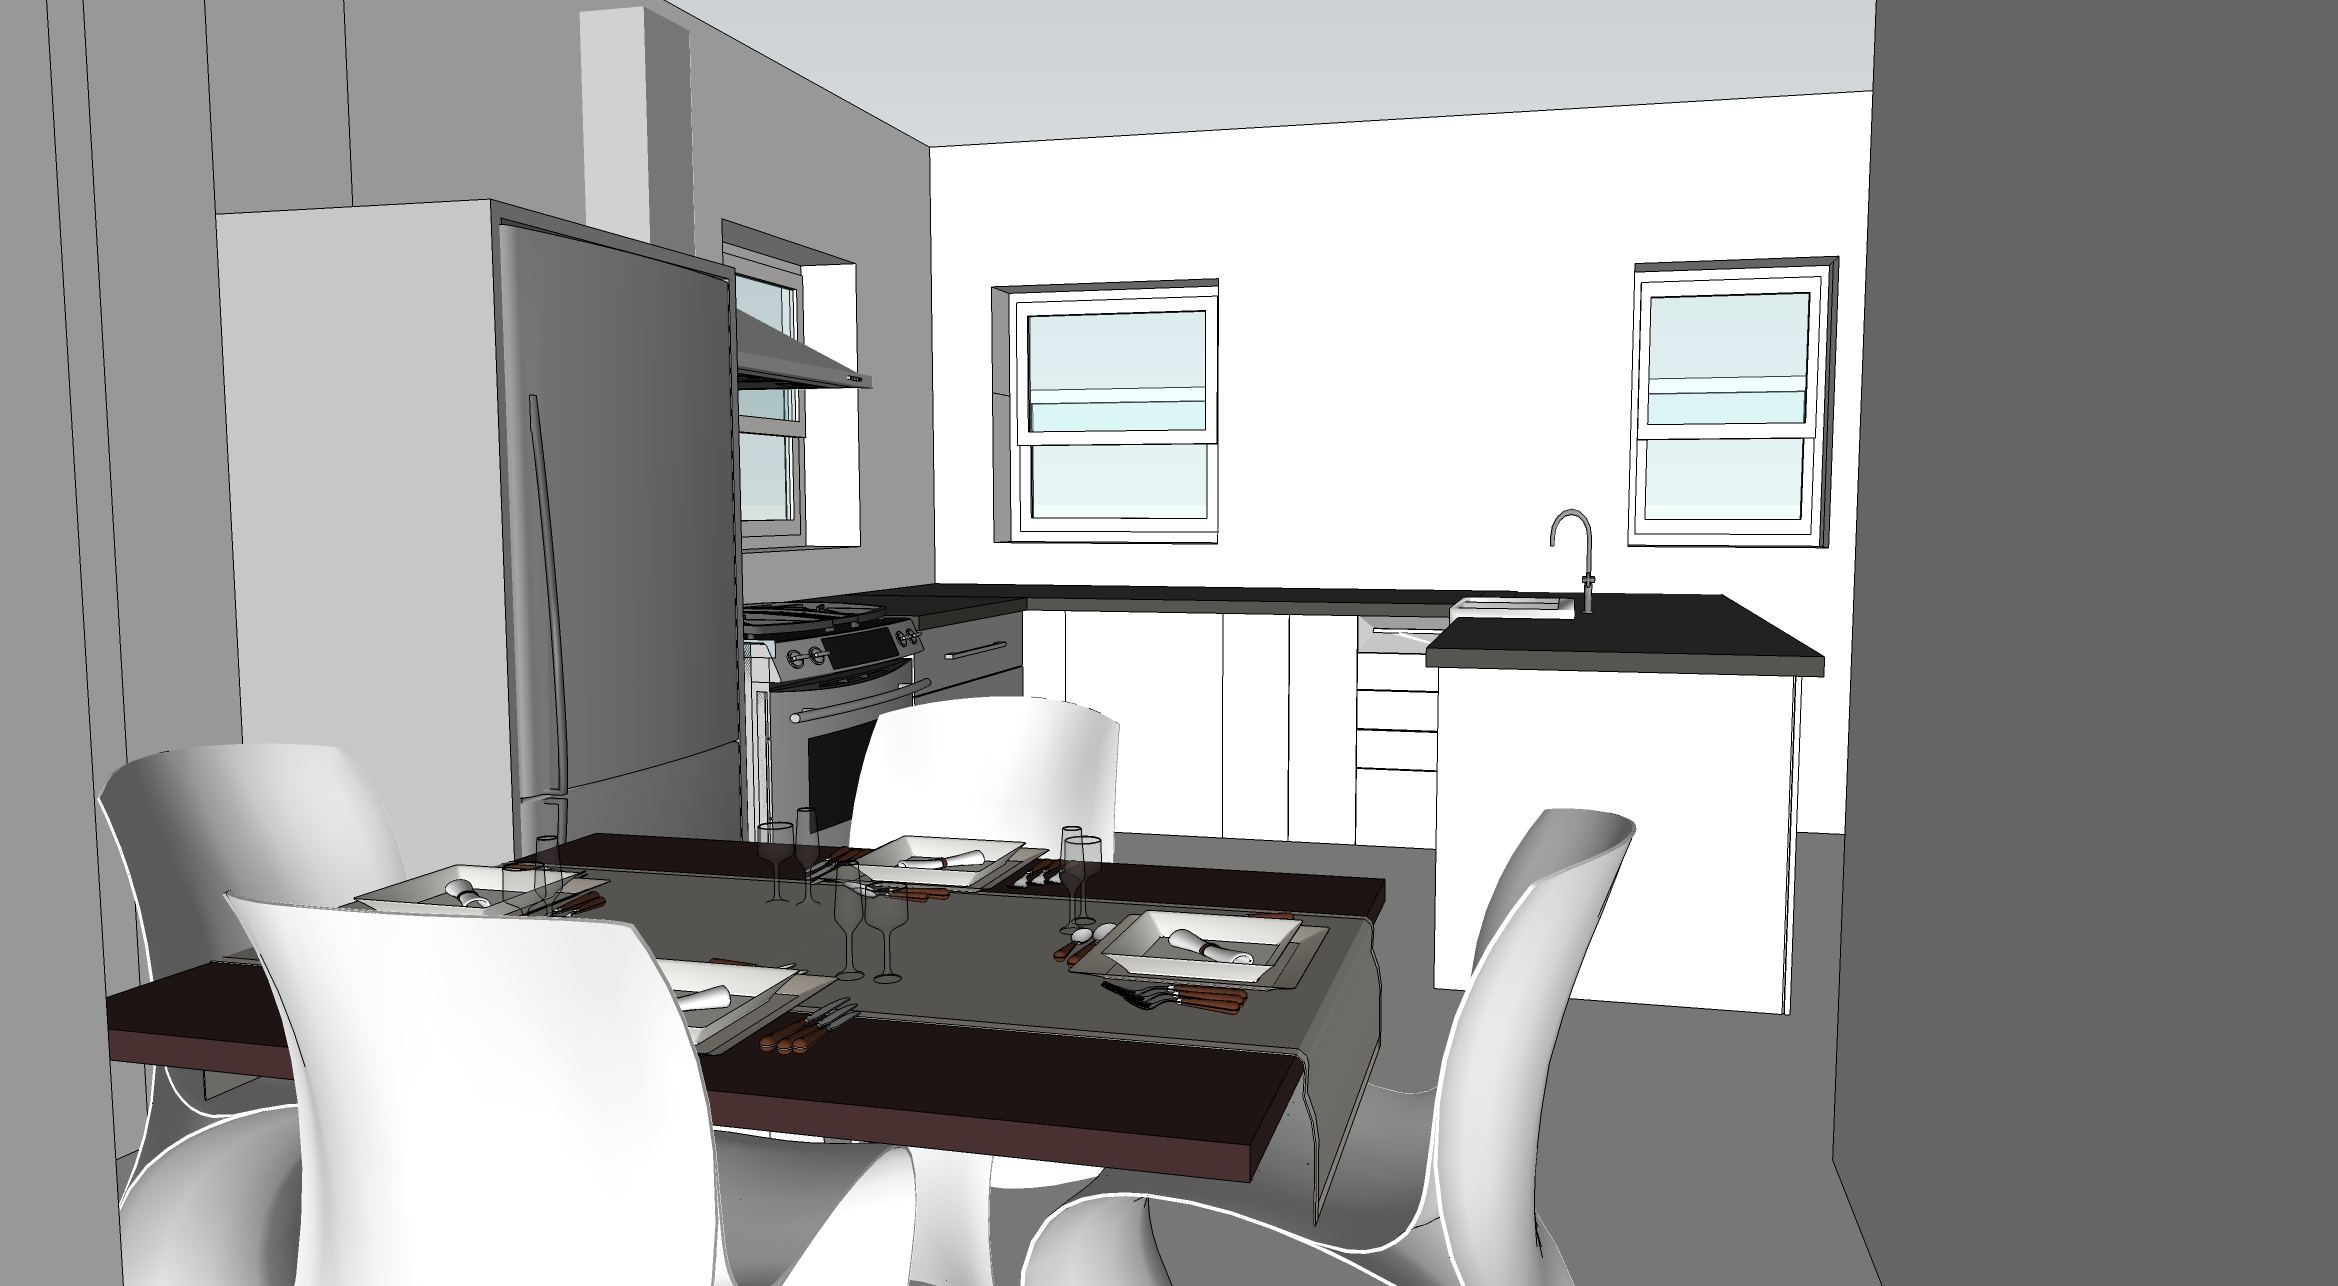 Proposed 3D Interior